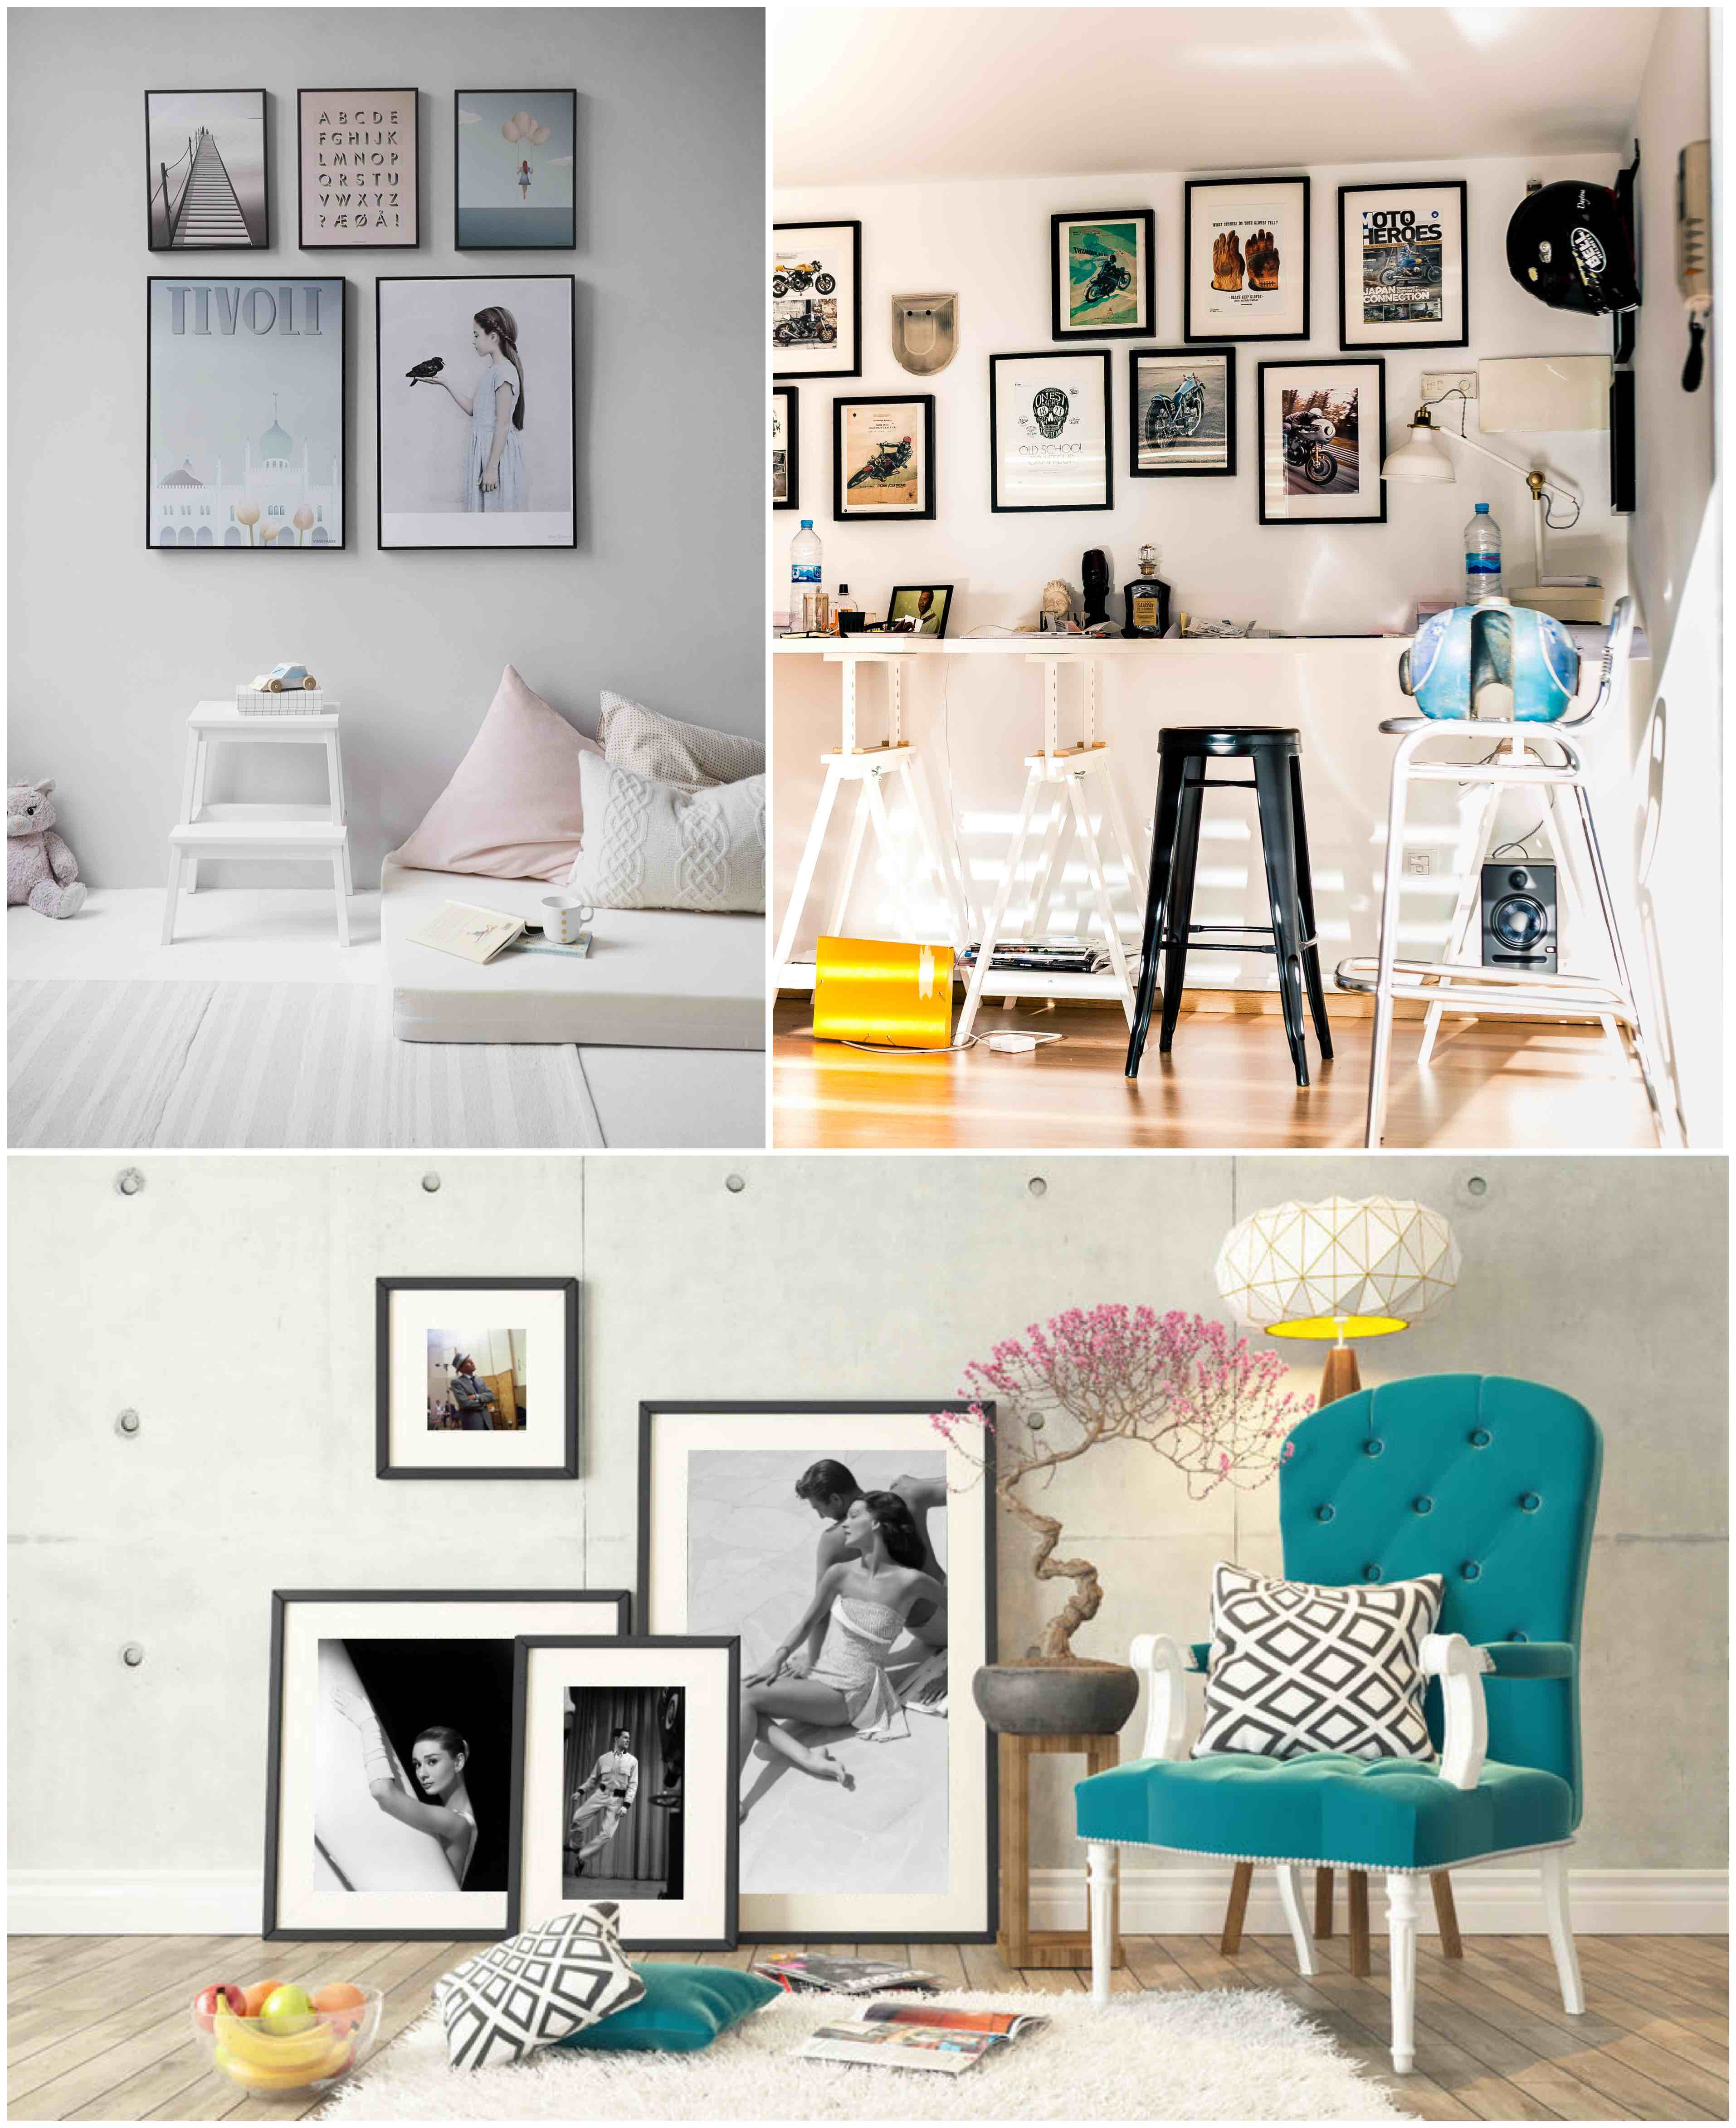 Interior Design Tip 1: Wall Arts for Home Decoration